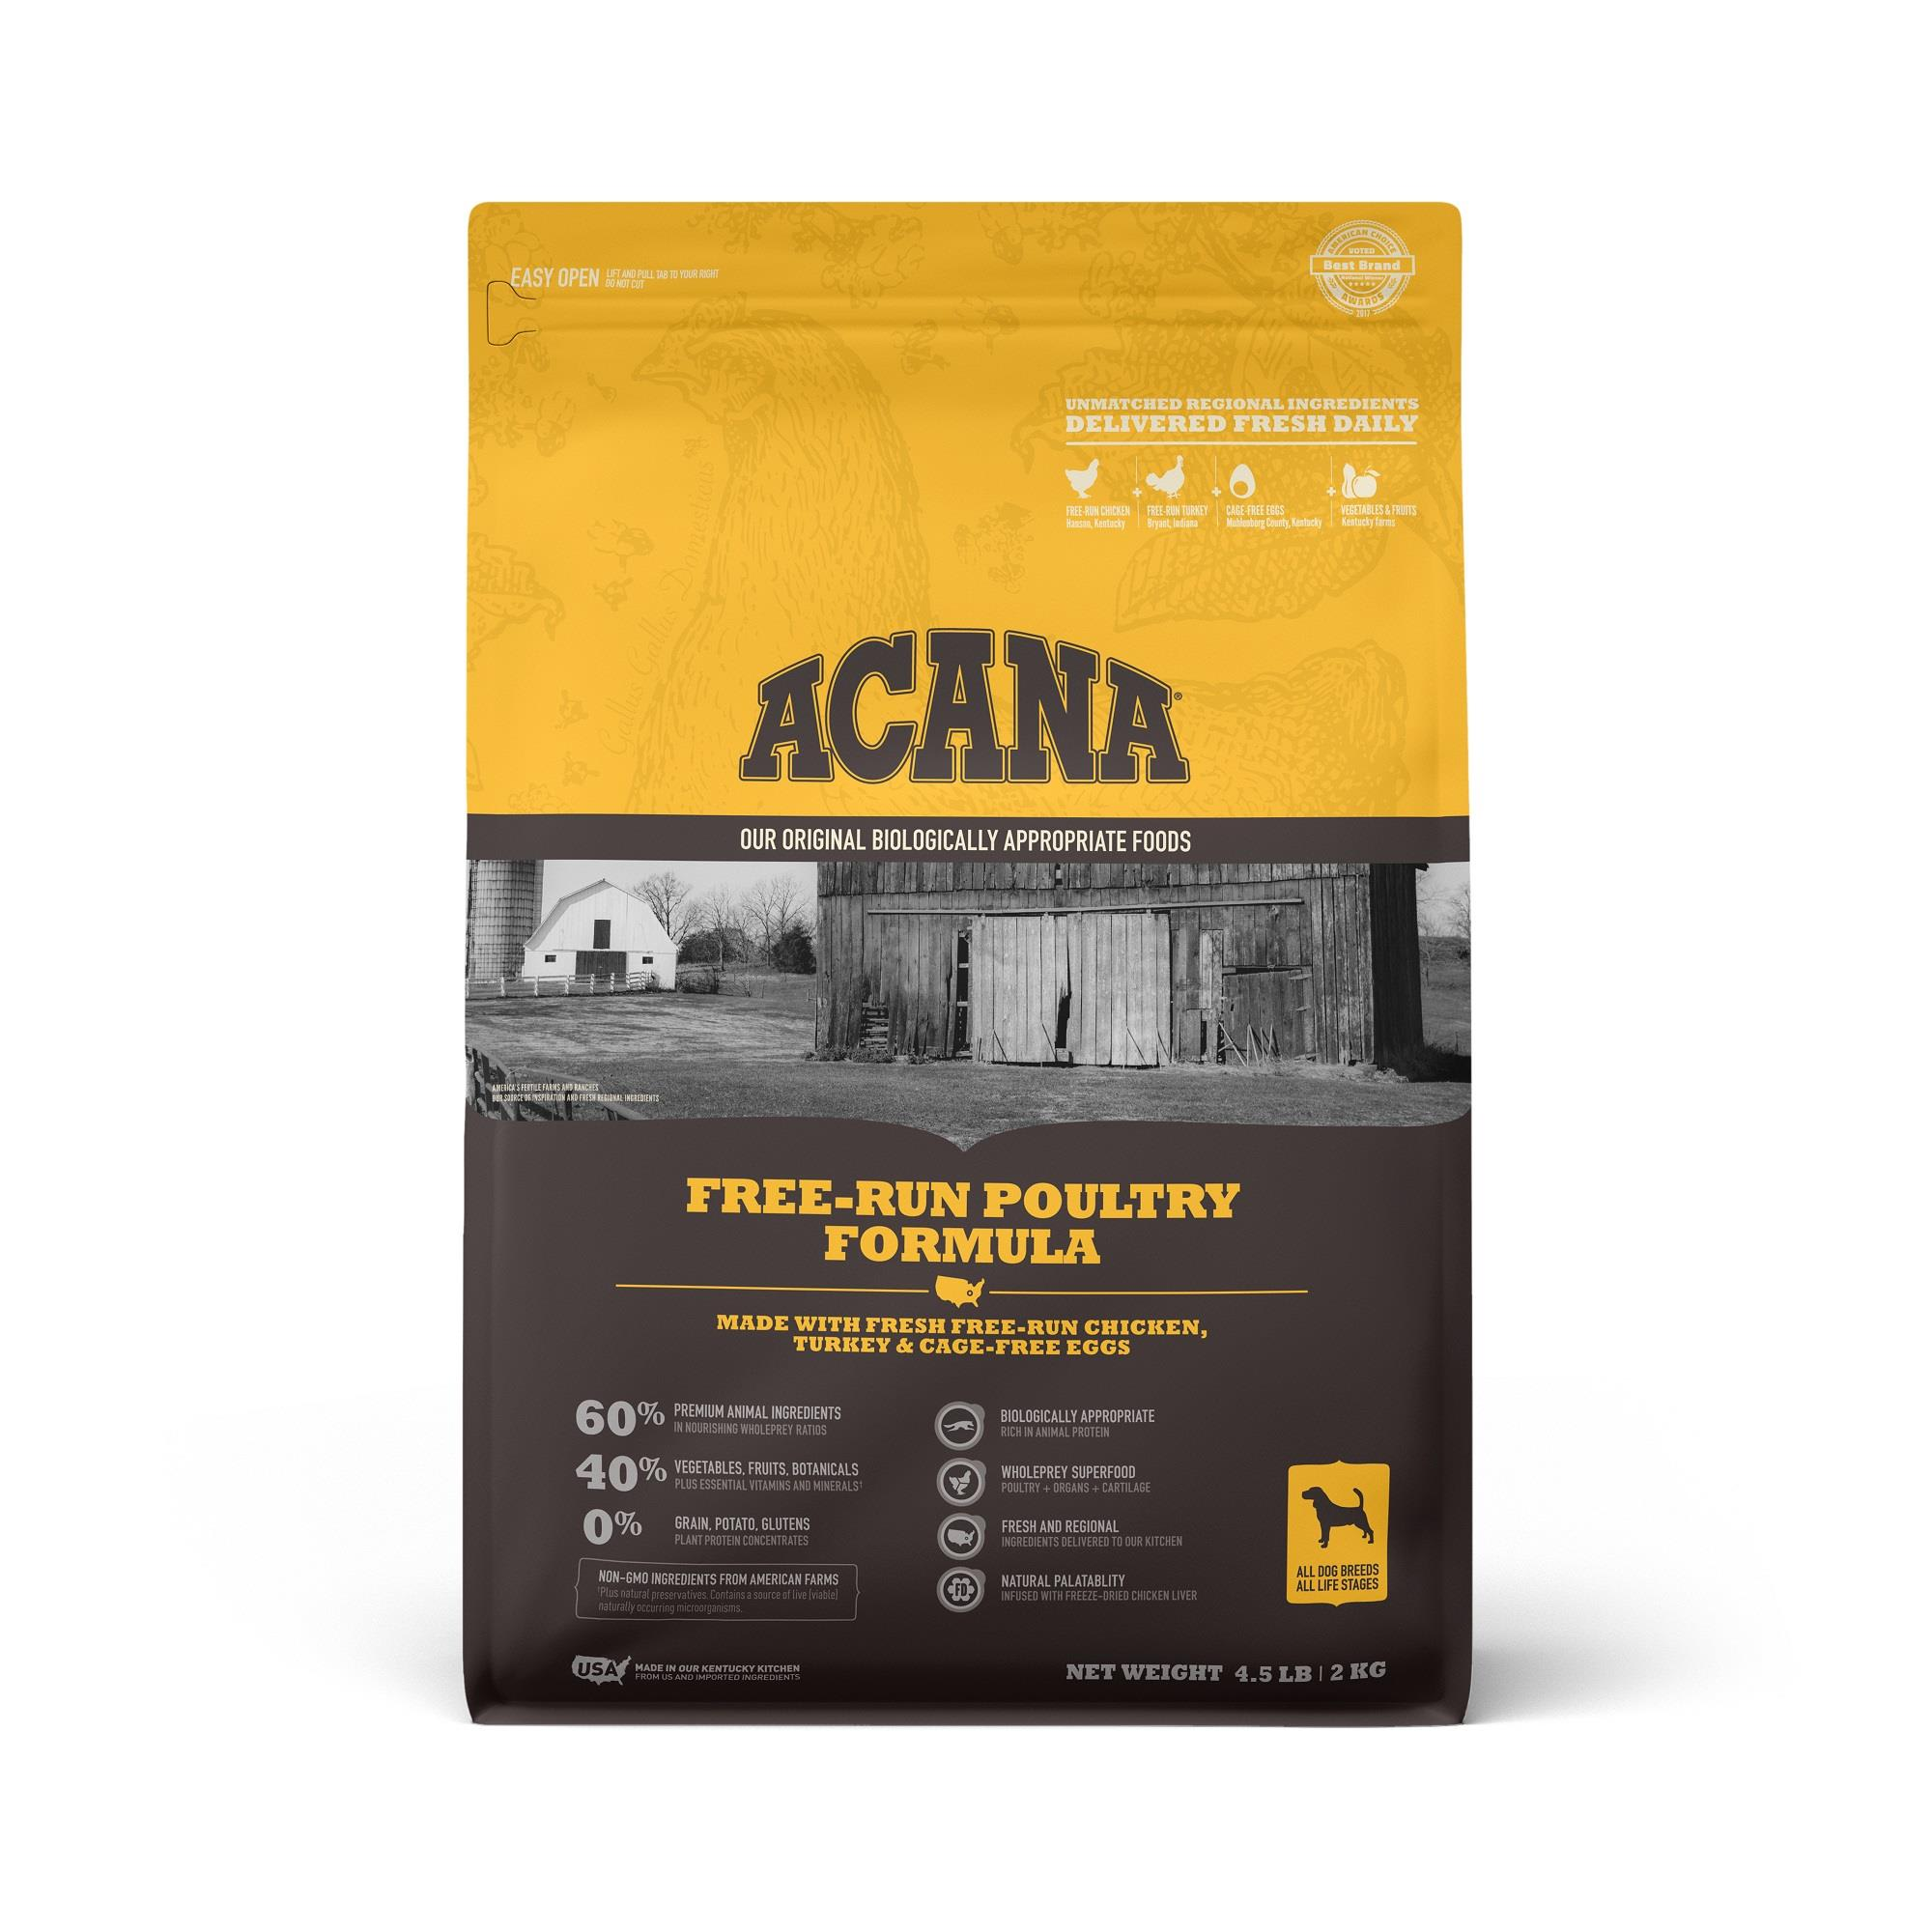 ACANA Grain-Free Free Run Poultry Chicken and Turkey and Cage-free Eggs Dry Dog Food, 4.5 lbs.